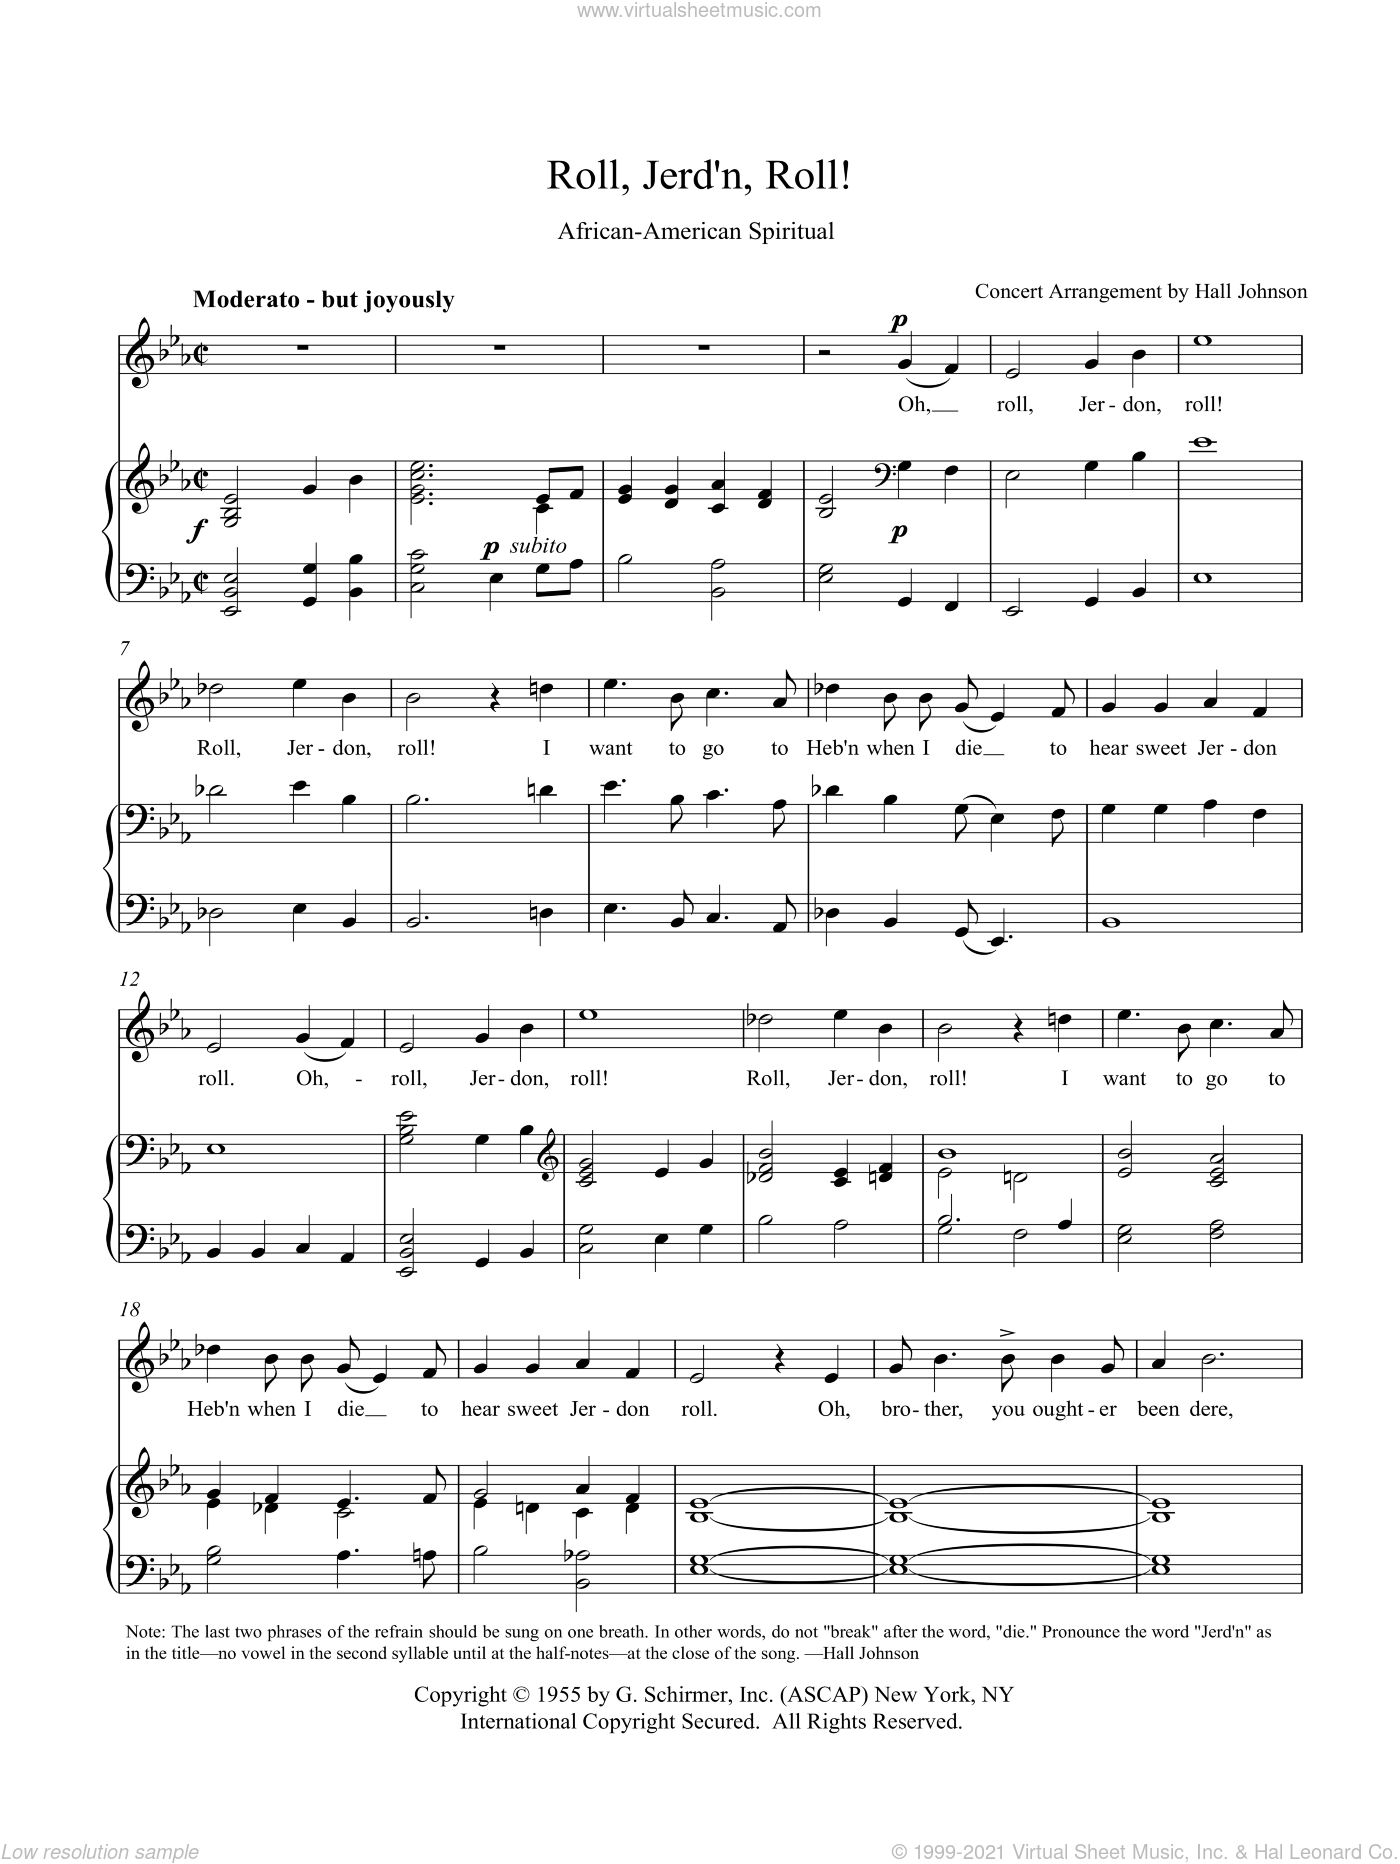 Roll, Jordan Roll (E-flat) sheet music for voice and piano by Hall Johnson. Score Image Preview.